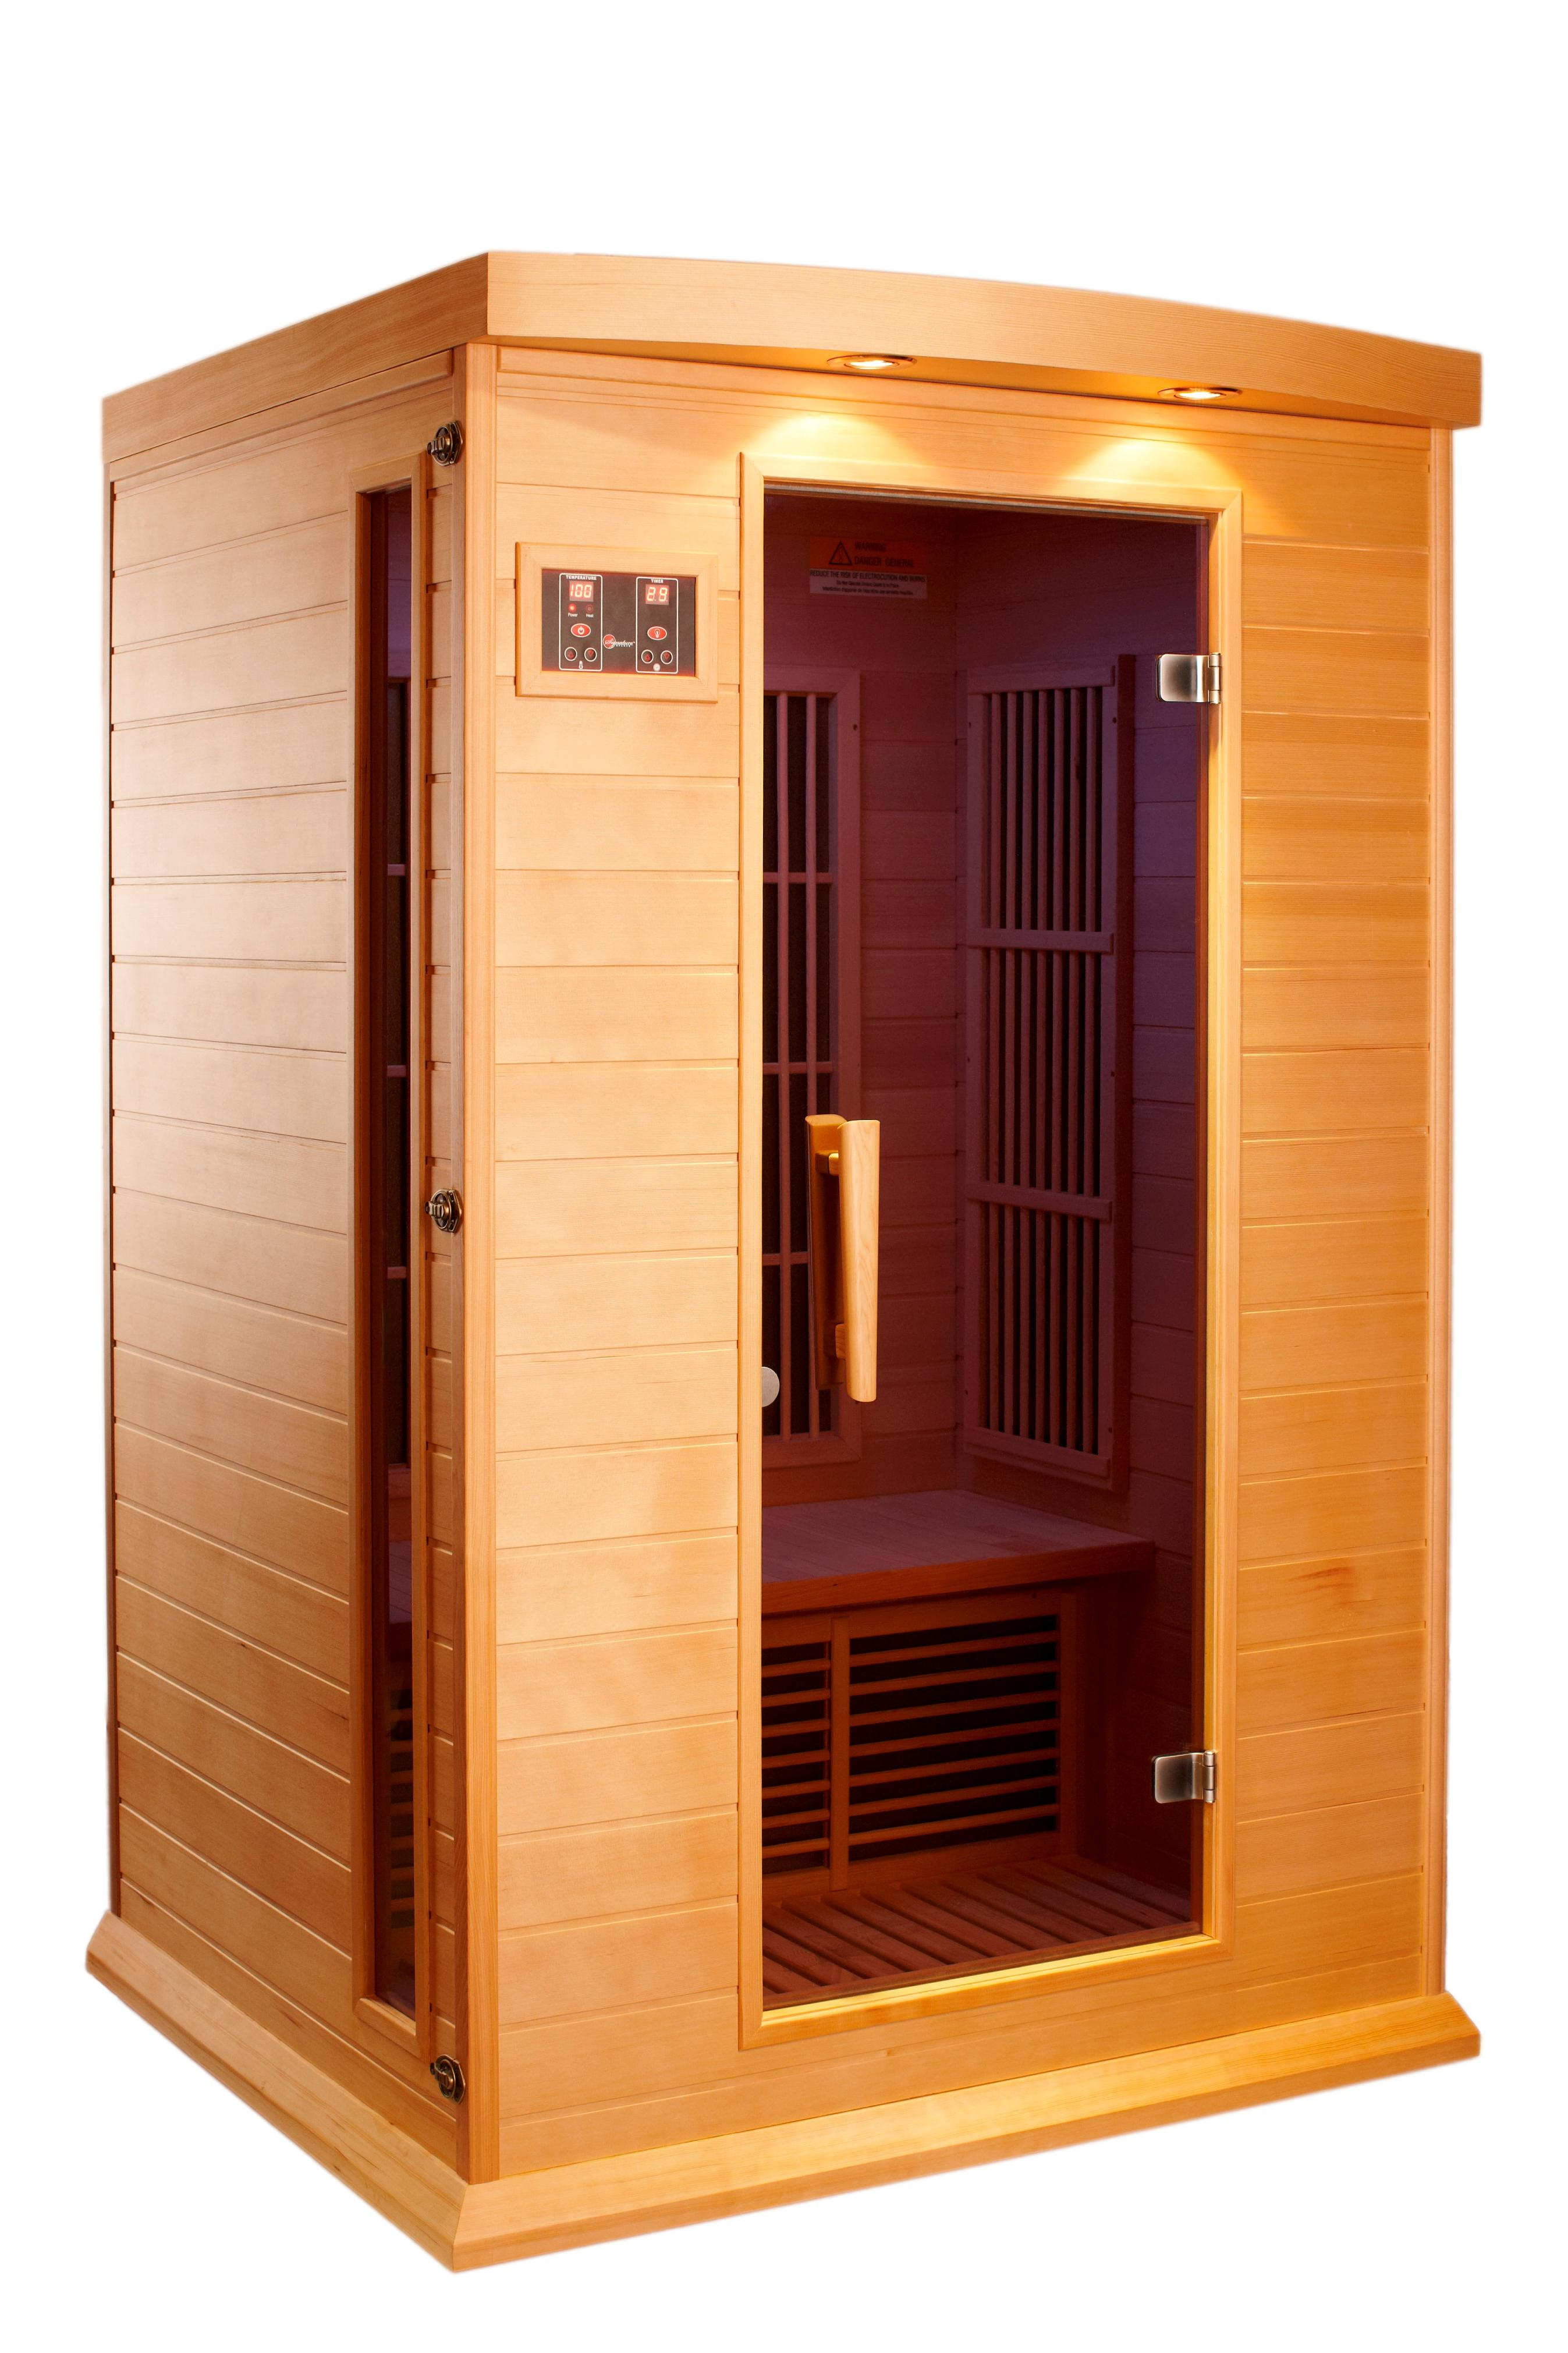 dynamic saunas amz mx k206 01 maxxus toulouse 2 person far infrared sauna garden. Black Bedroom Furniture Sets. Home Design Ideas